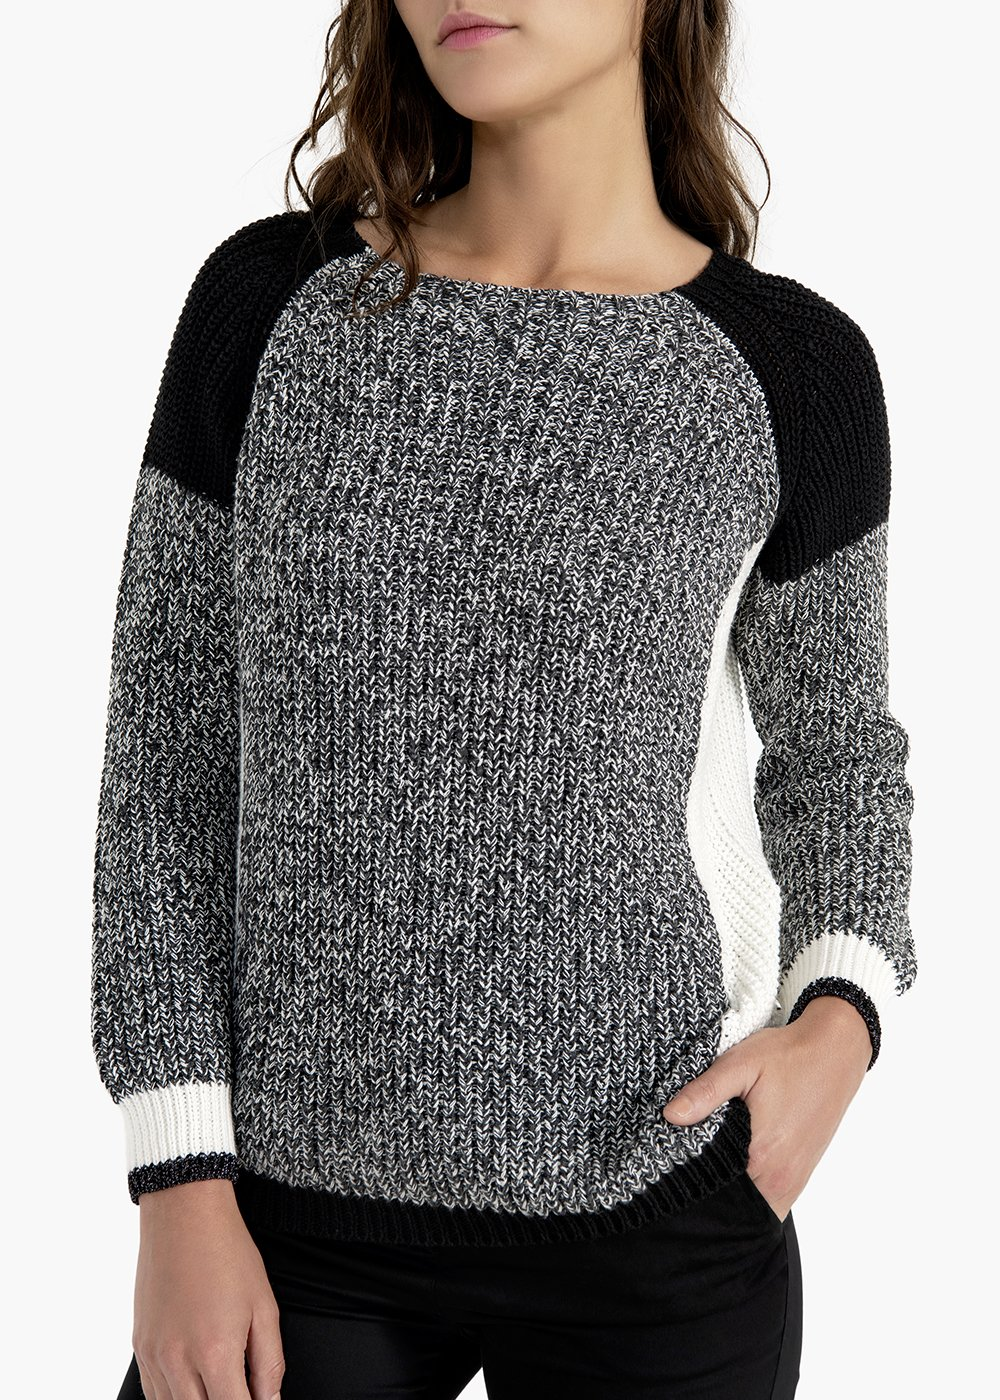 Marin sweater with salt and pepper effect and raglan sleeves